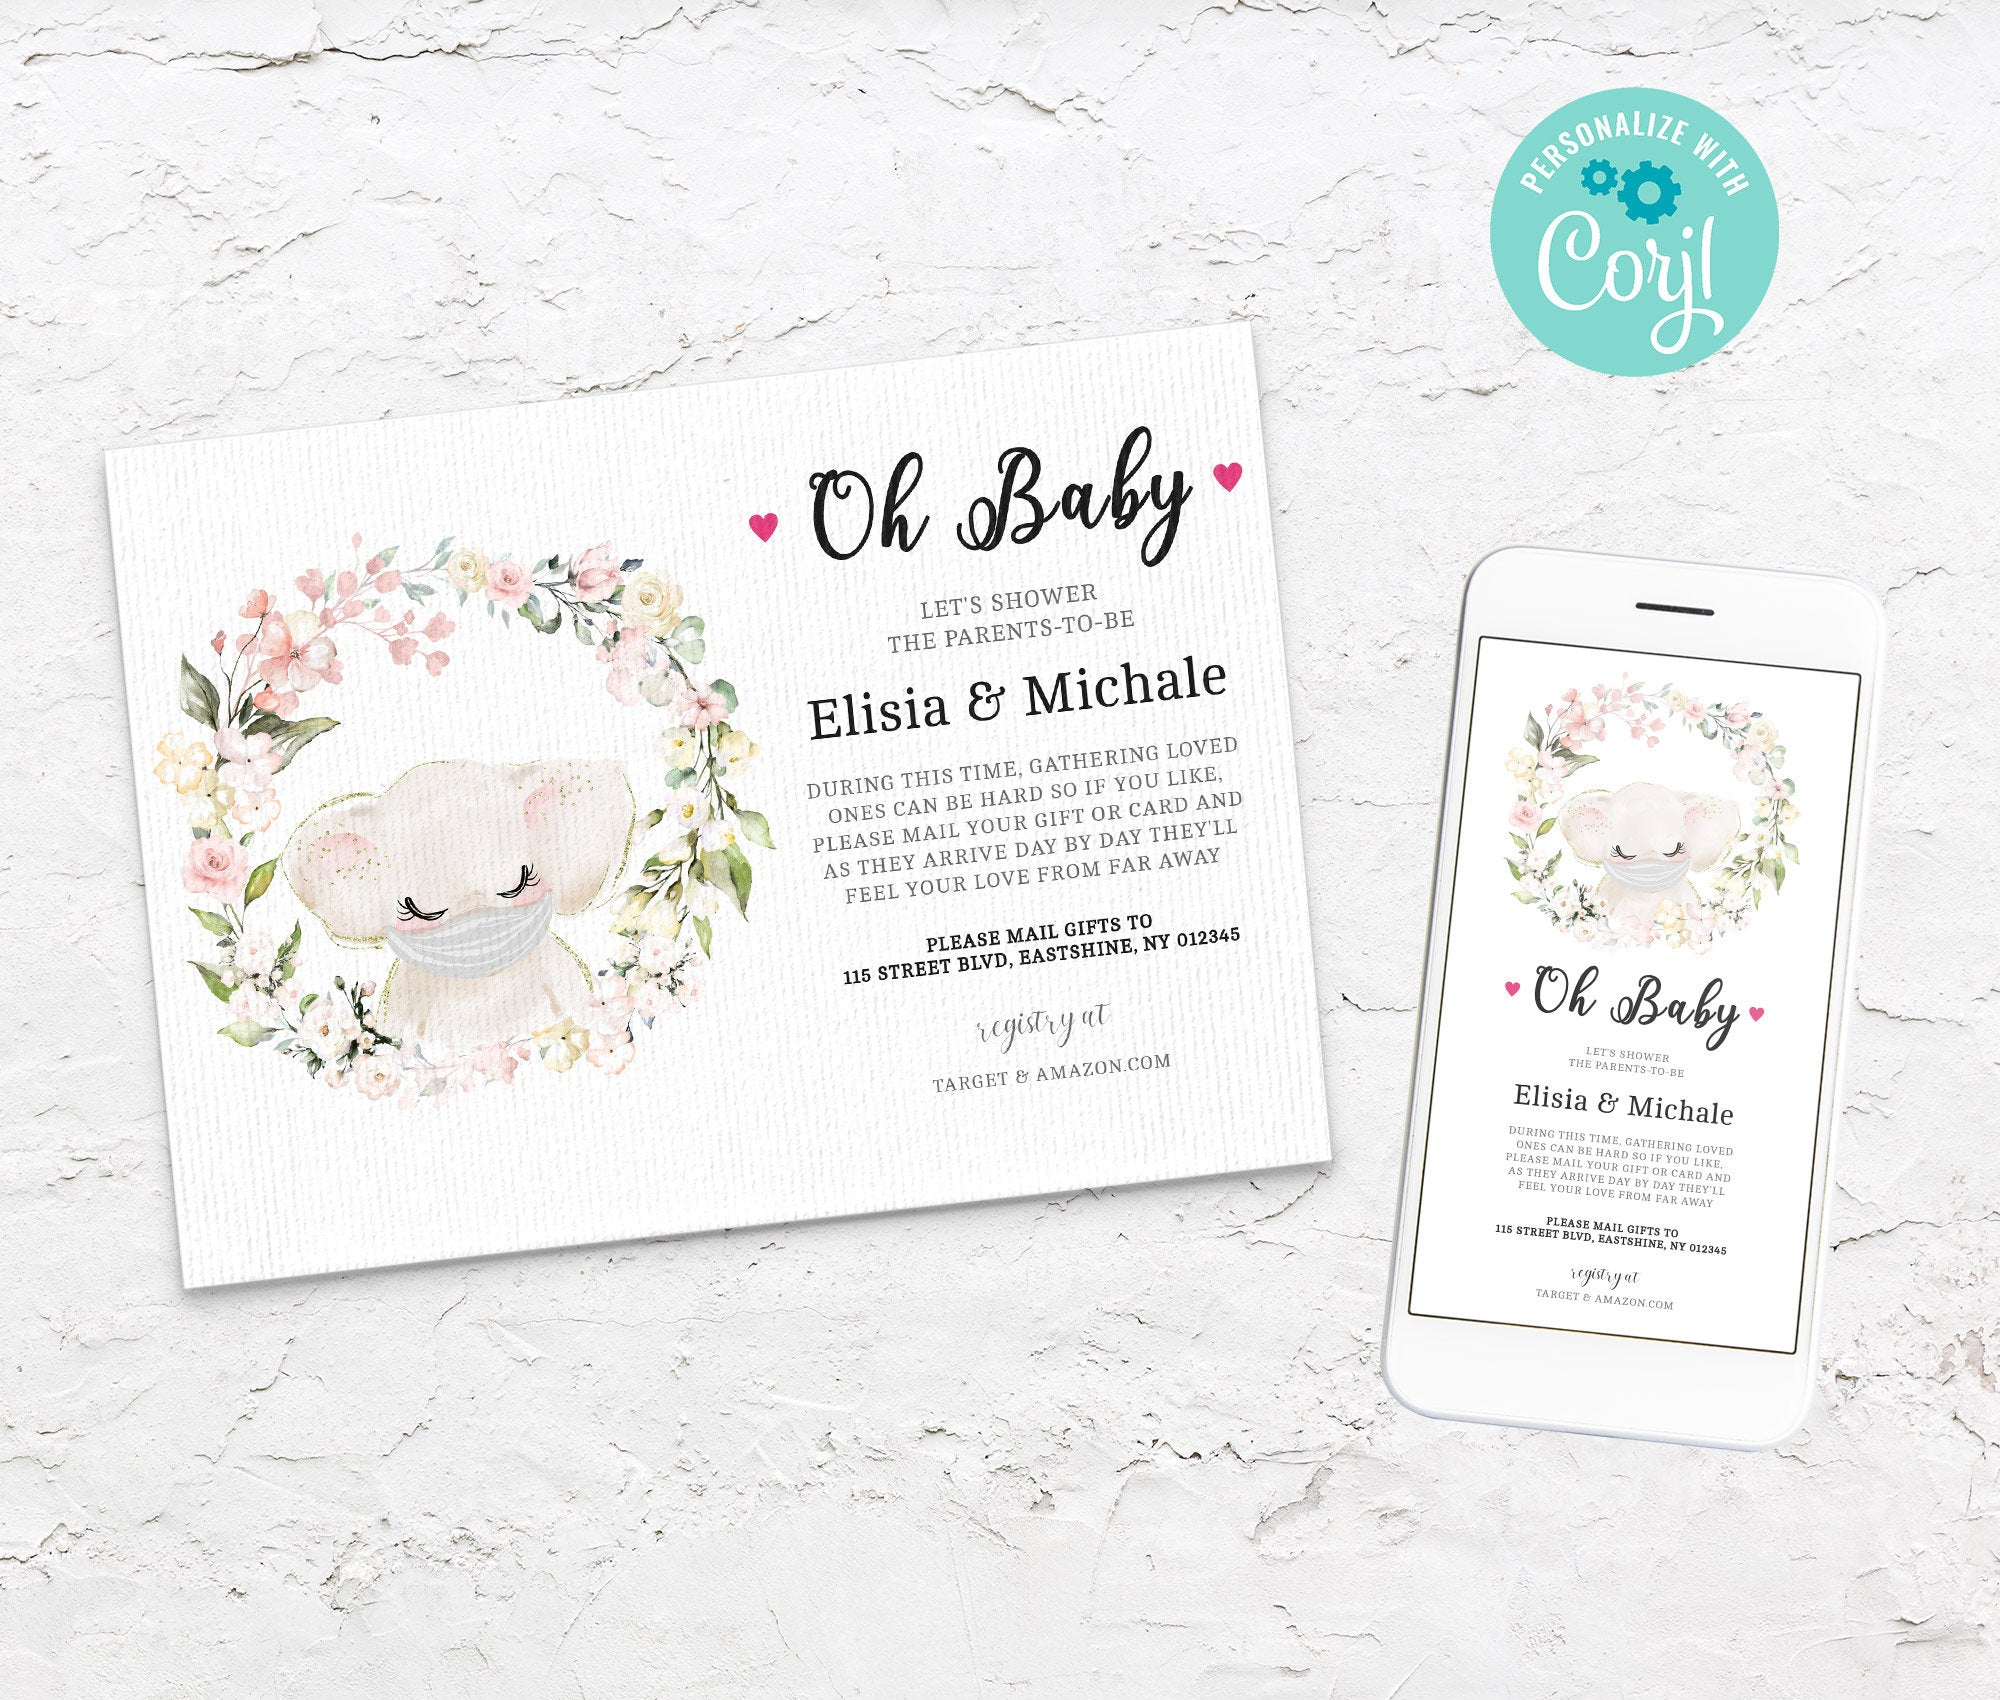 Baby Shower by Mail Template Elephant, Animal Baby shower invitation, Shower by Mail, Shower Evite, Editable, Instant Download - 3609 BS3601